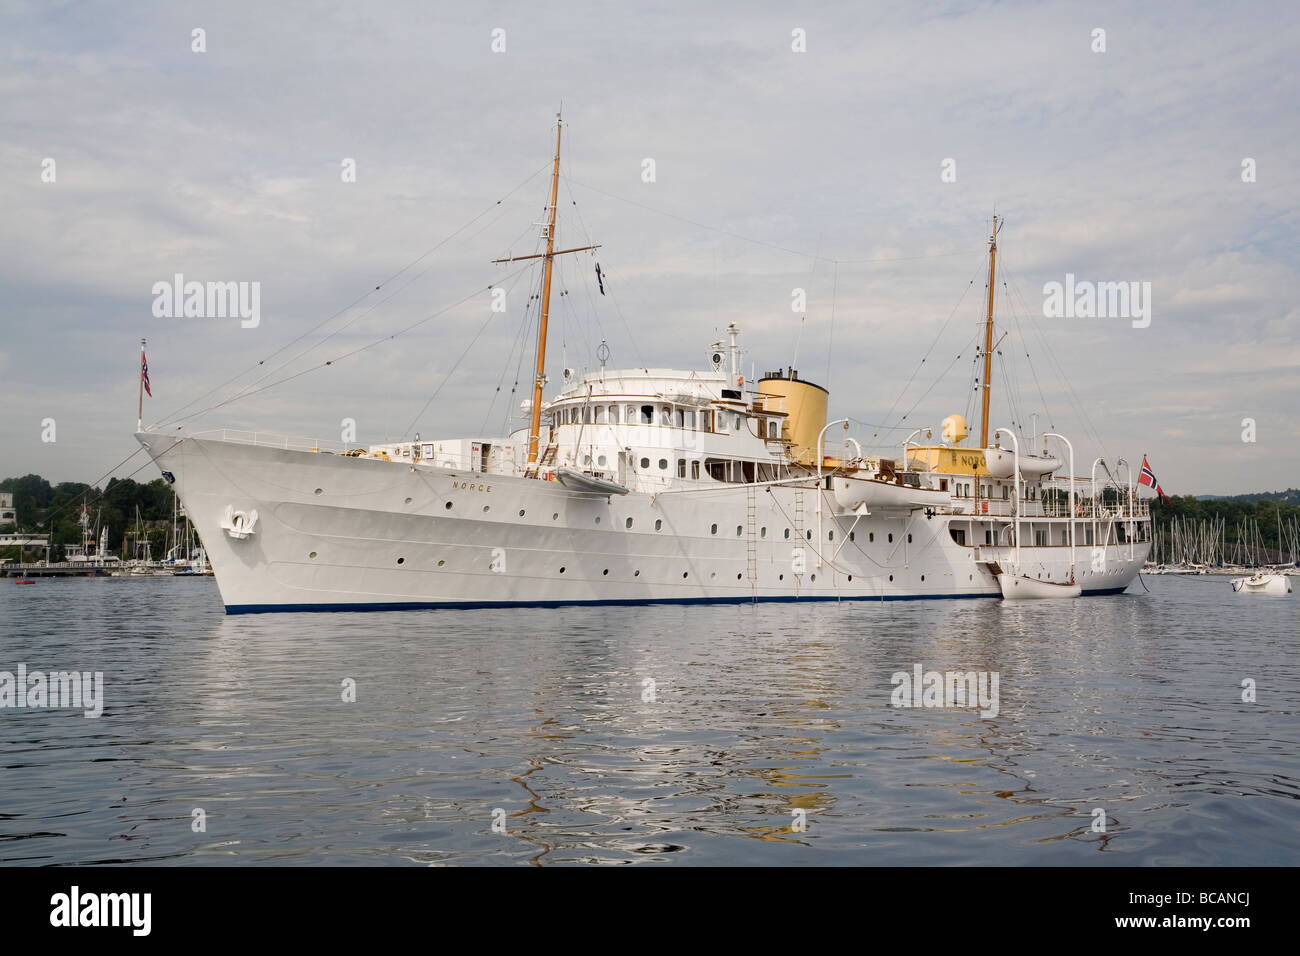 Norway Royal yacht 'Norge' - Stock Image